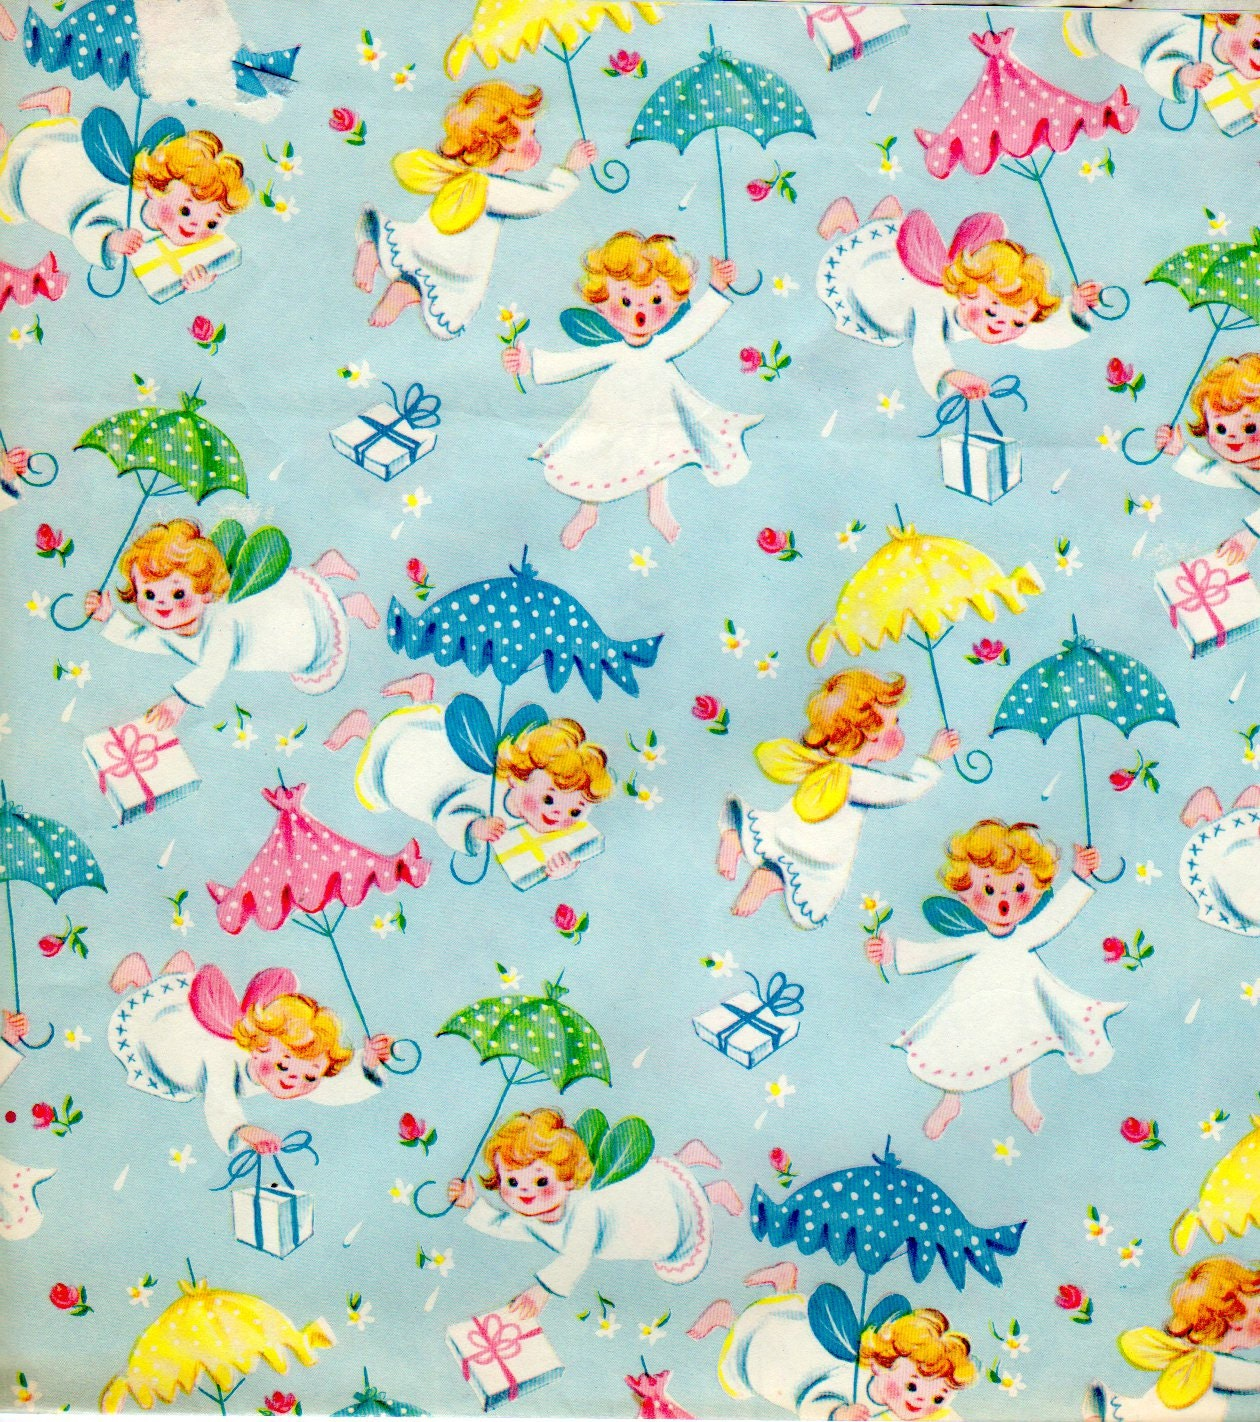 Sprinkled With Love Cloud Baby Shower moreover Baby Peanut Clipart additionally Golf Coloring Pictures likewise Royalty Free Stock Photo Kids Elephant Image9583655 further Walk to school clipart. on bag boy umbrella